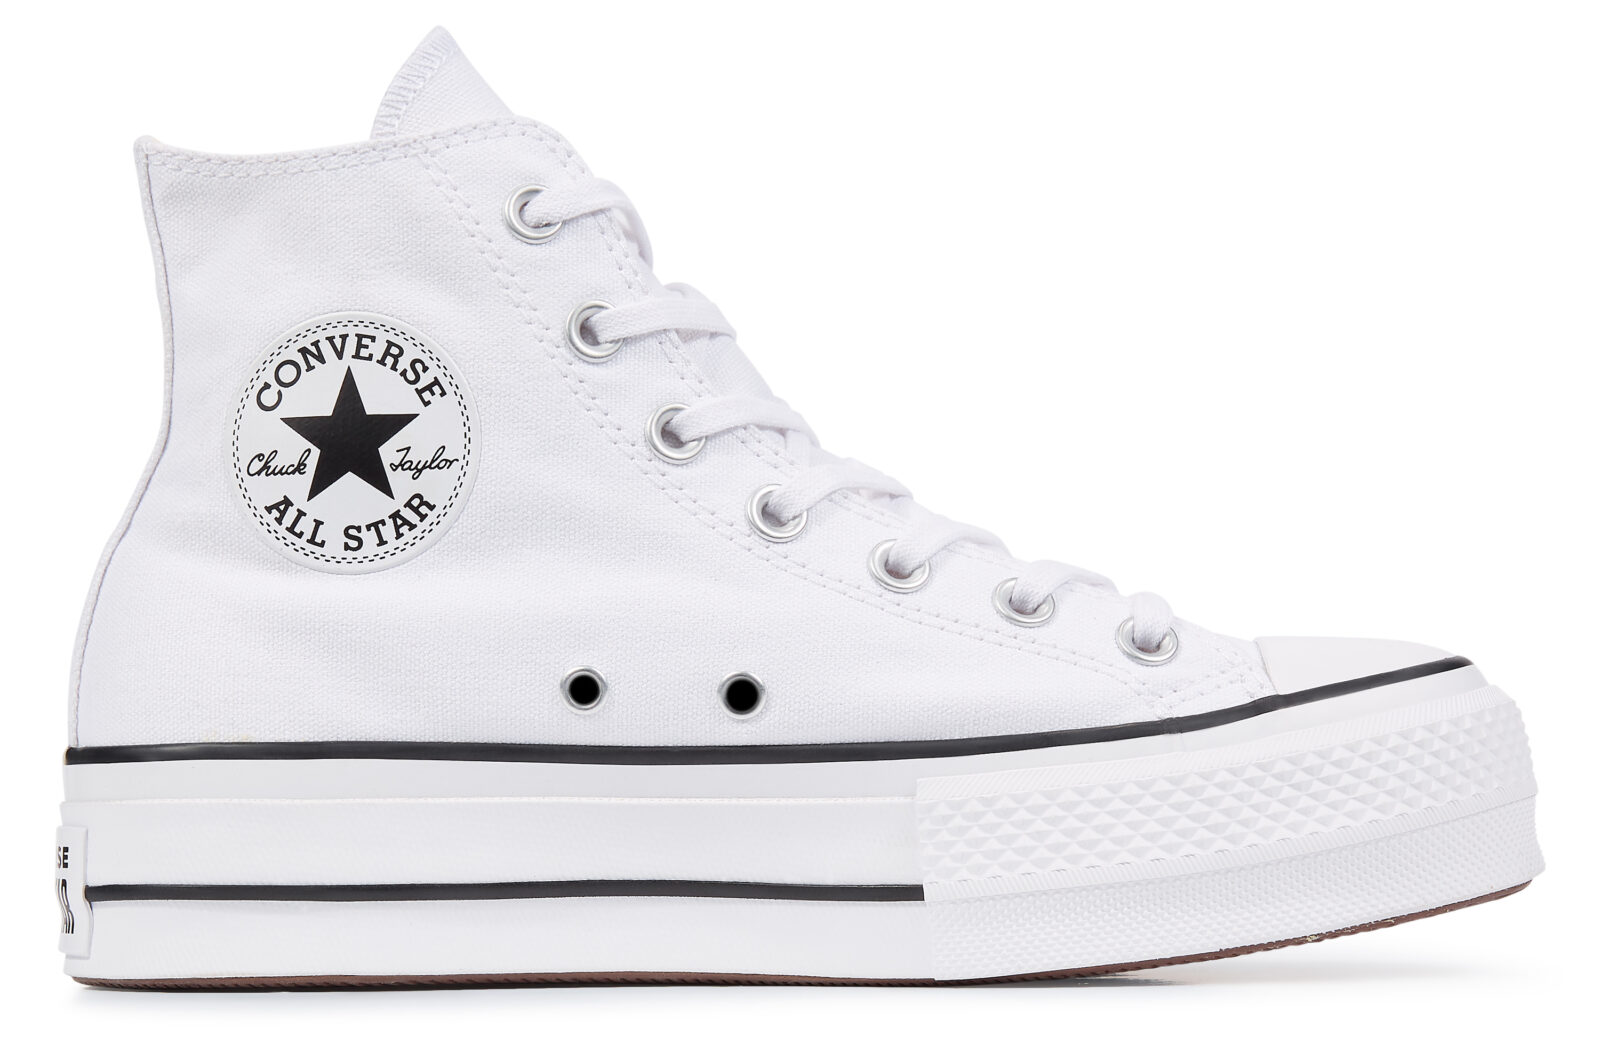 Converse Platform Chuck Taylor High Top White